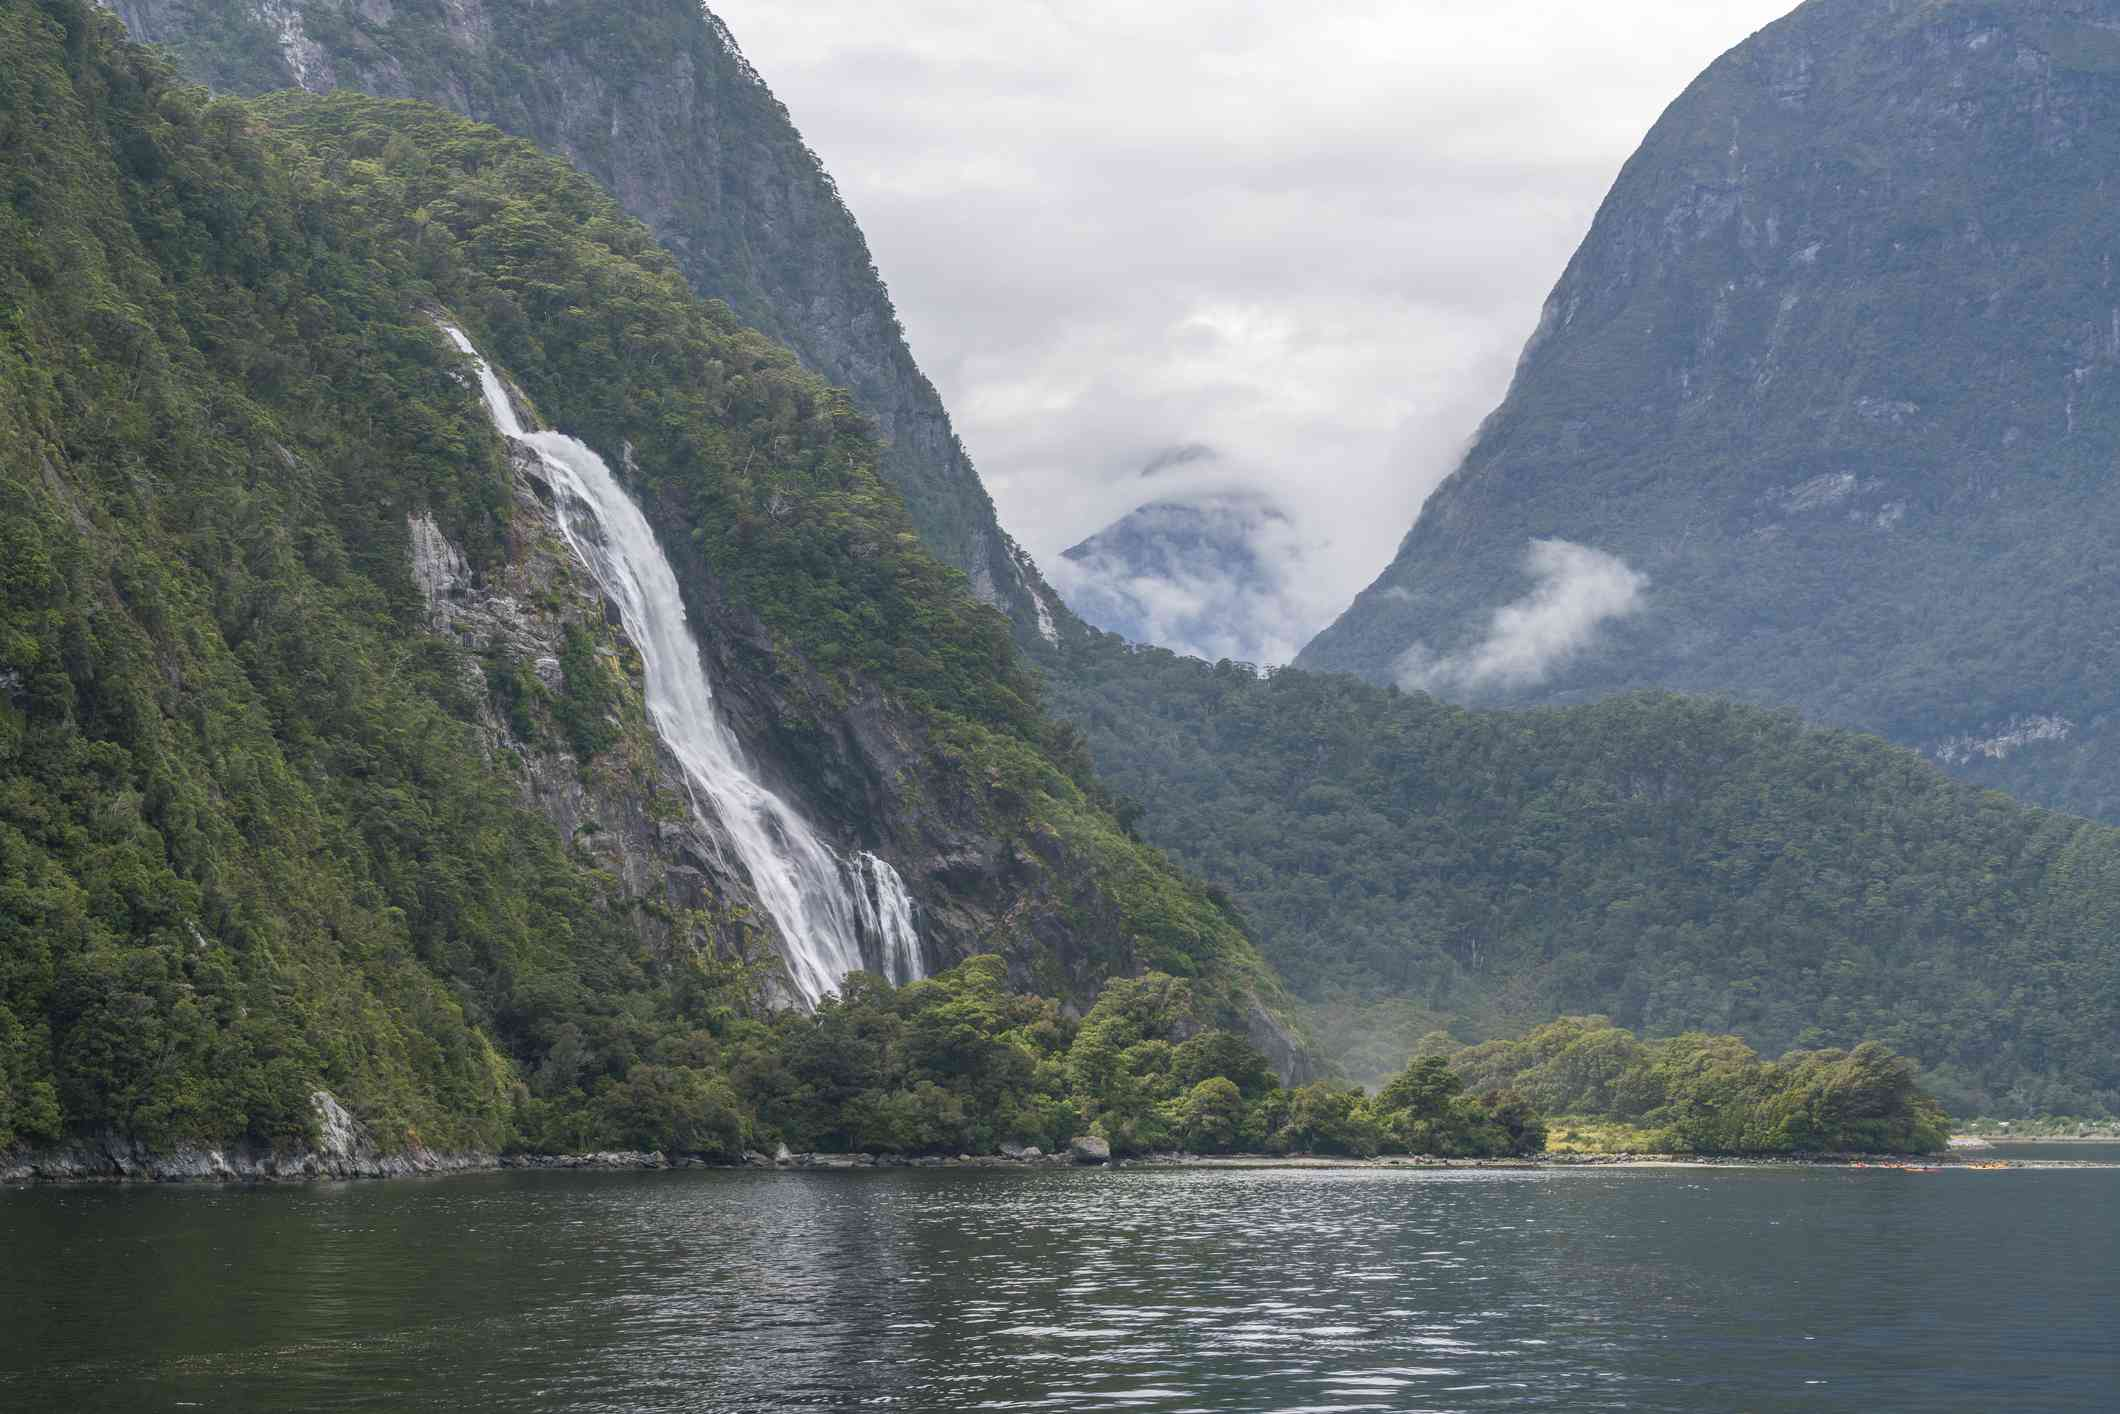 waterfalls flowing down high forested mountains